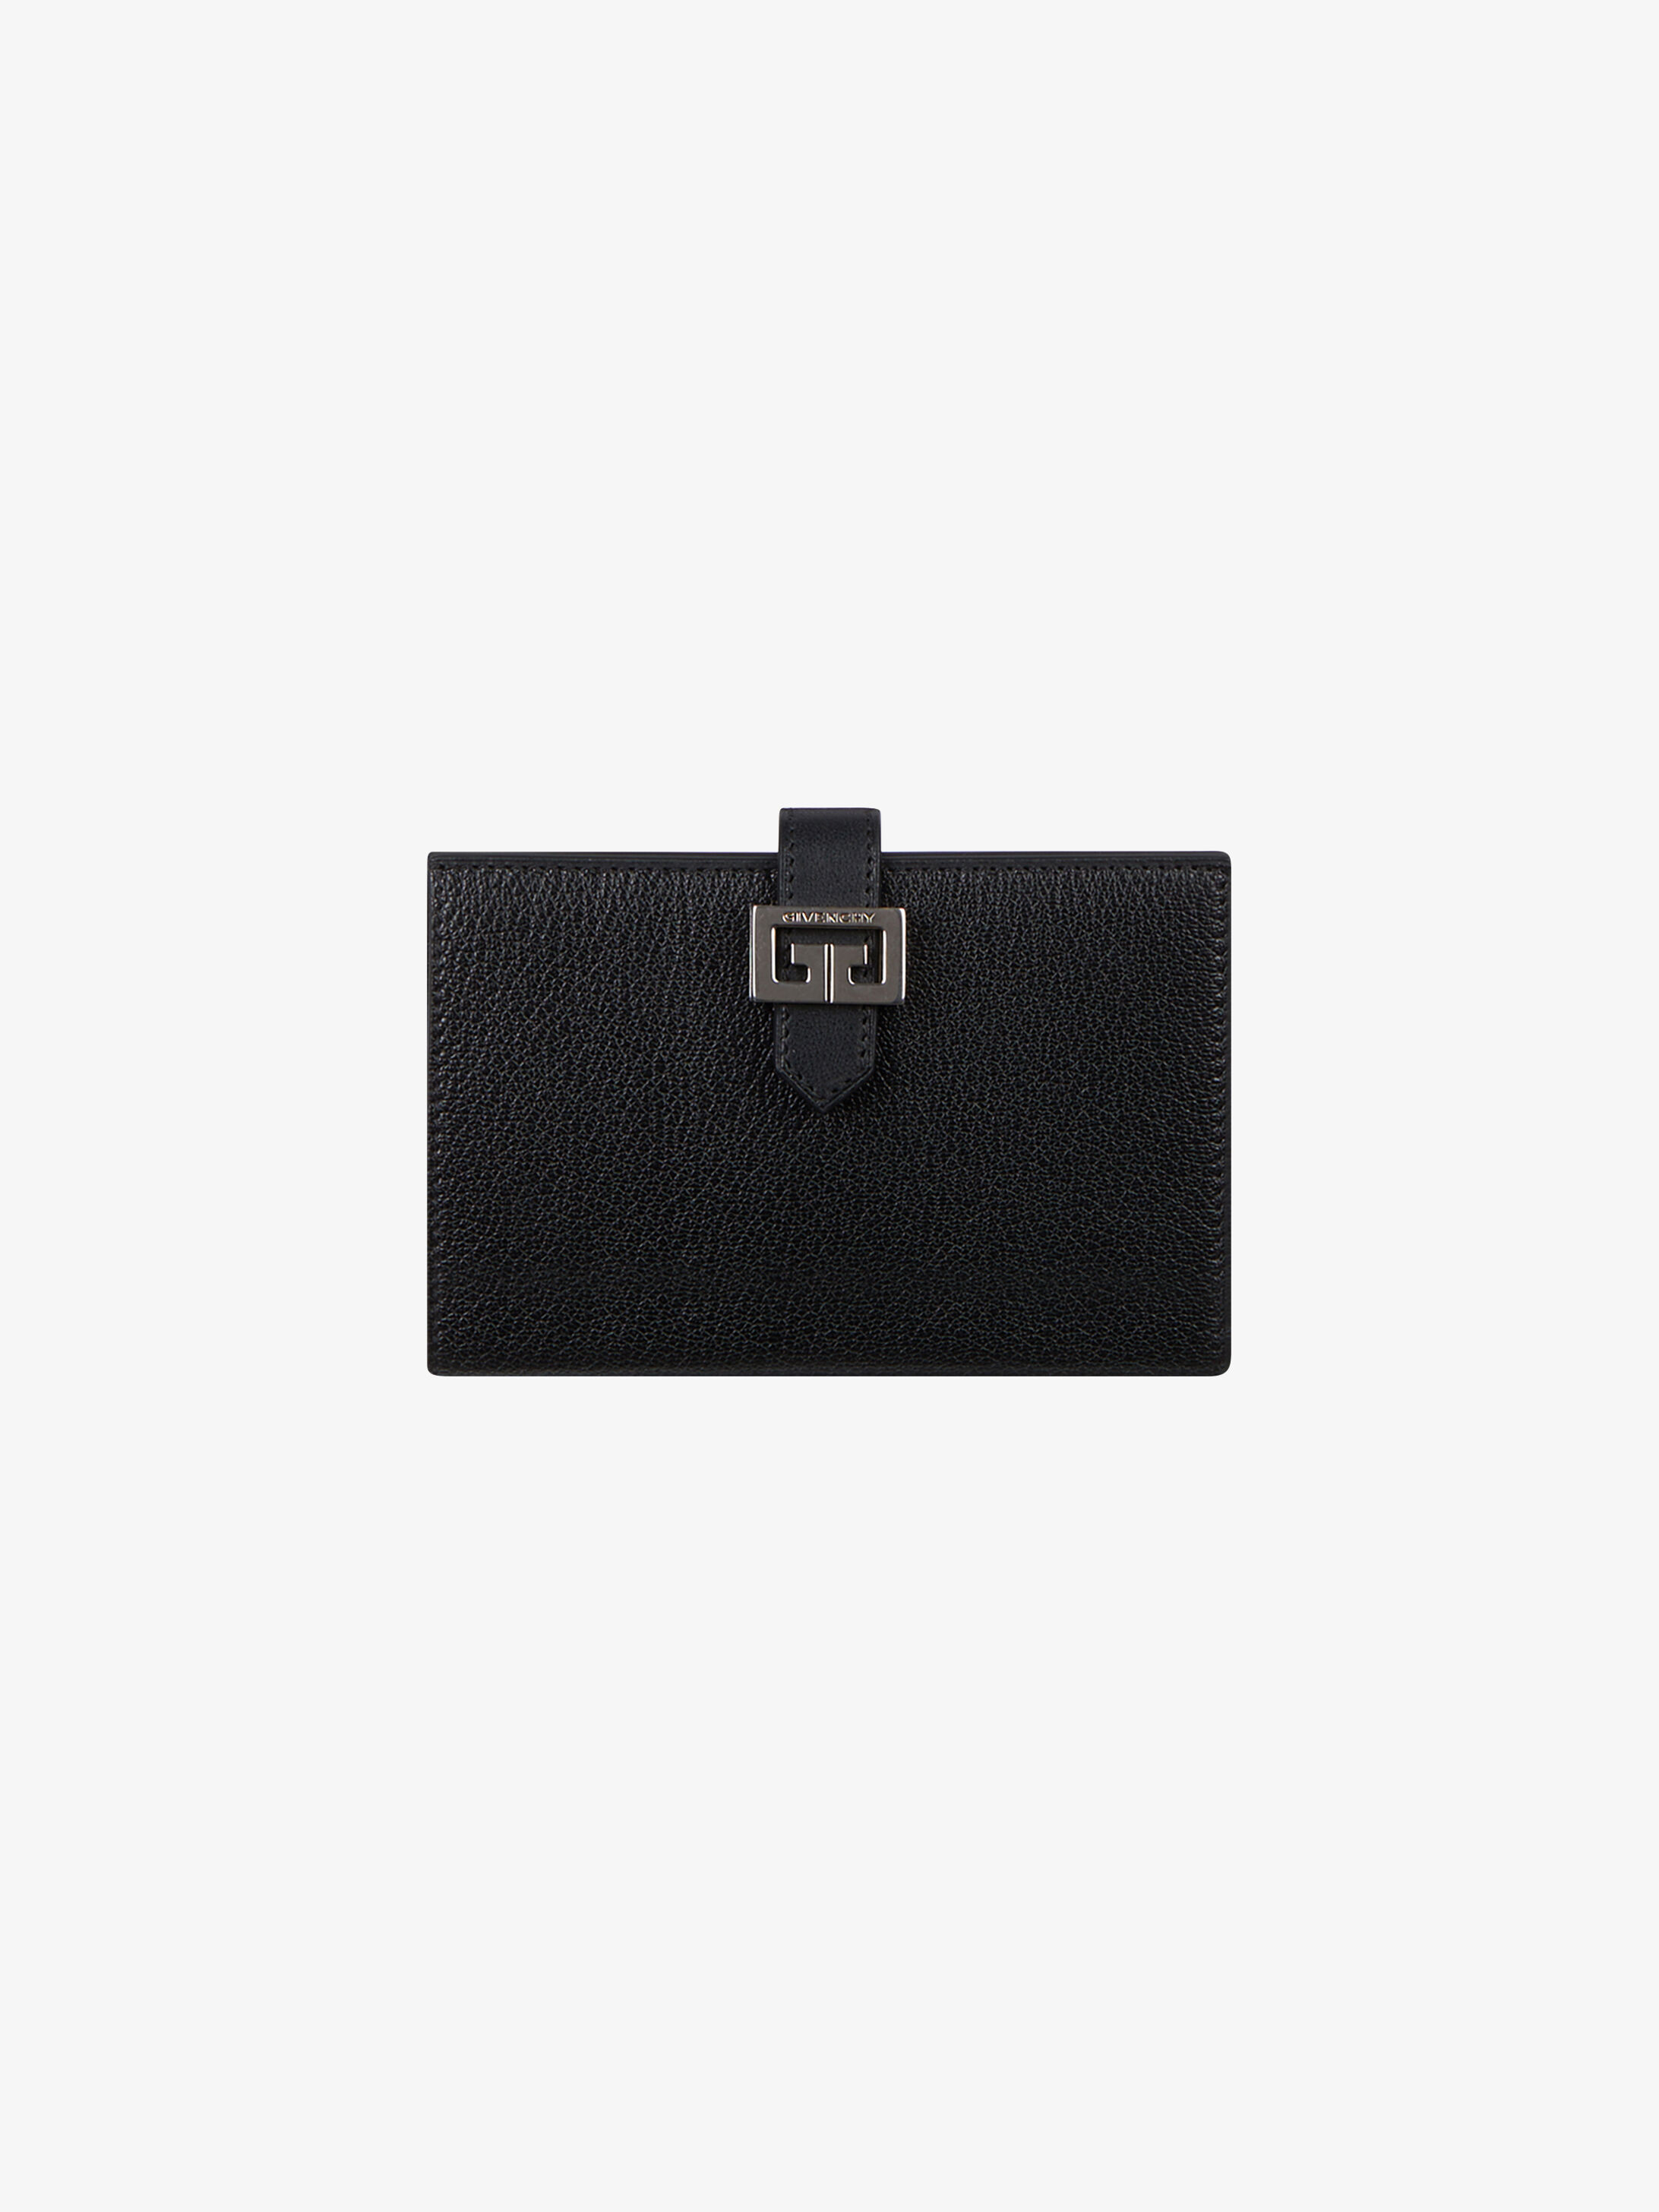 513ce4b7d4 Women's Wallets collection by Givenchy. | GIVENCHY Paris